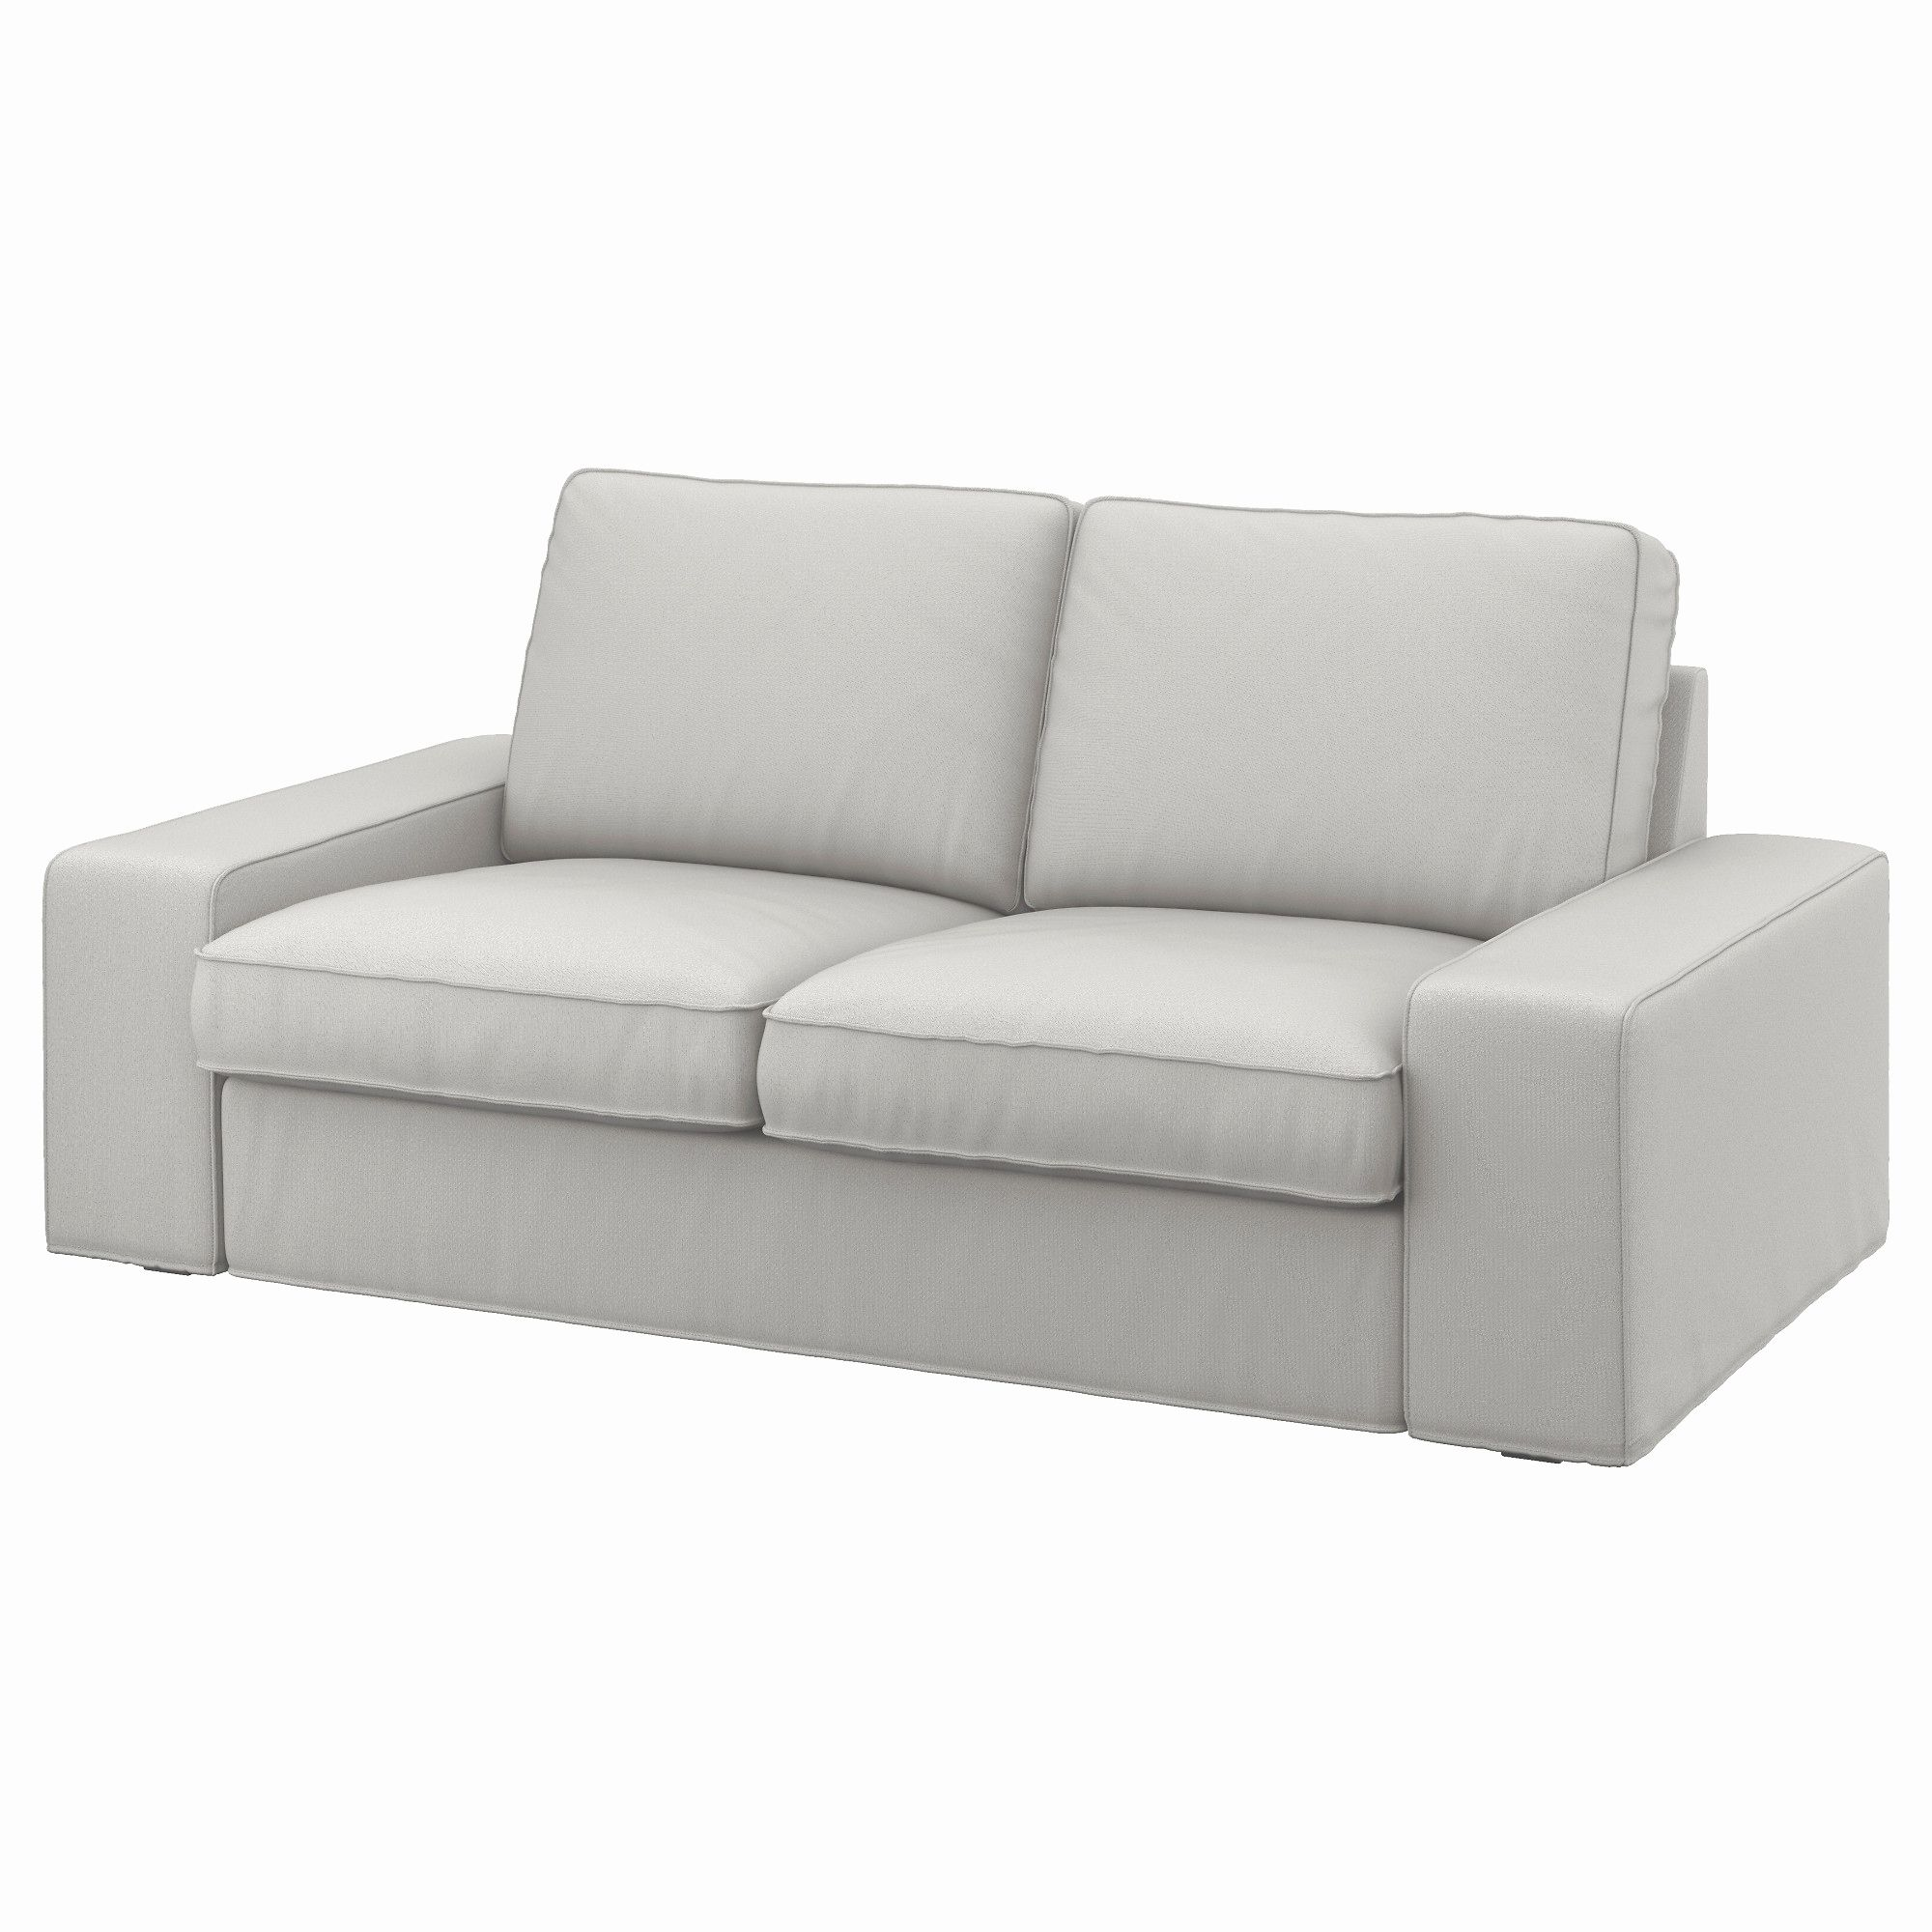 Unique Kivik Sofa Cover Picture Kivik Sofa Cover Beautiful Kivik Two Seat  Sofa Ramna Light Grey